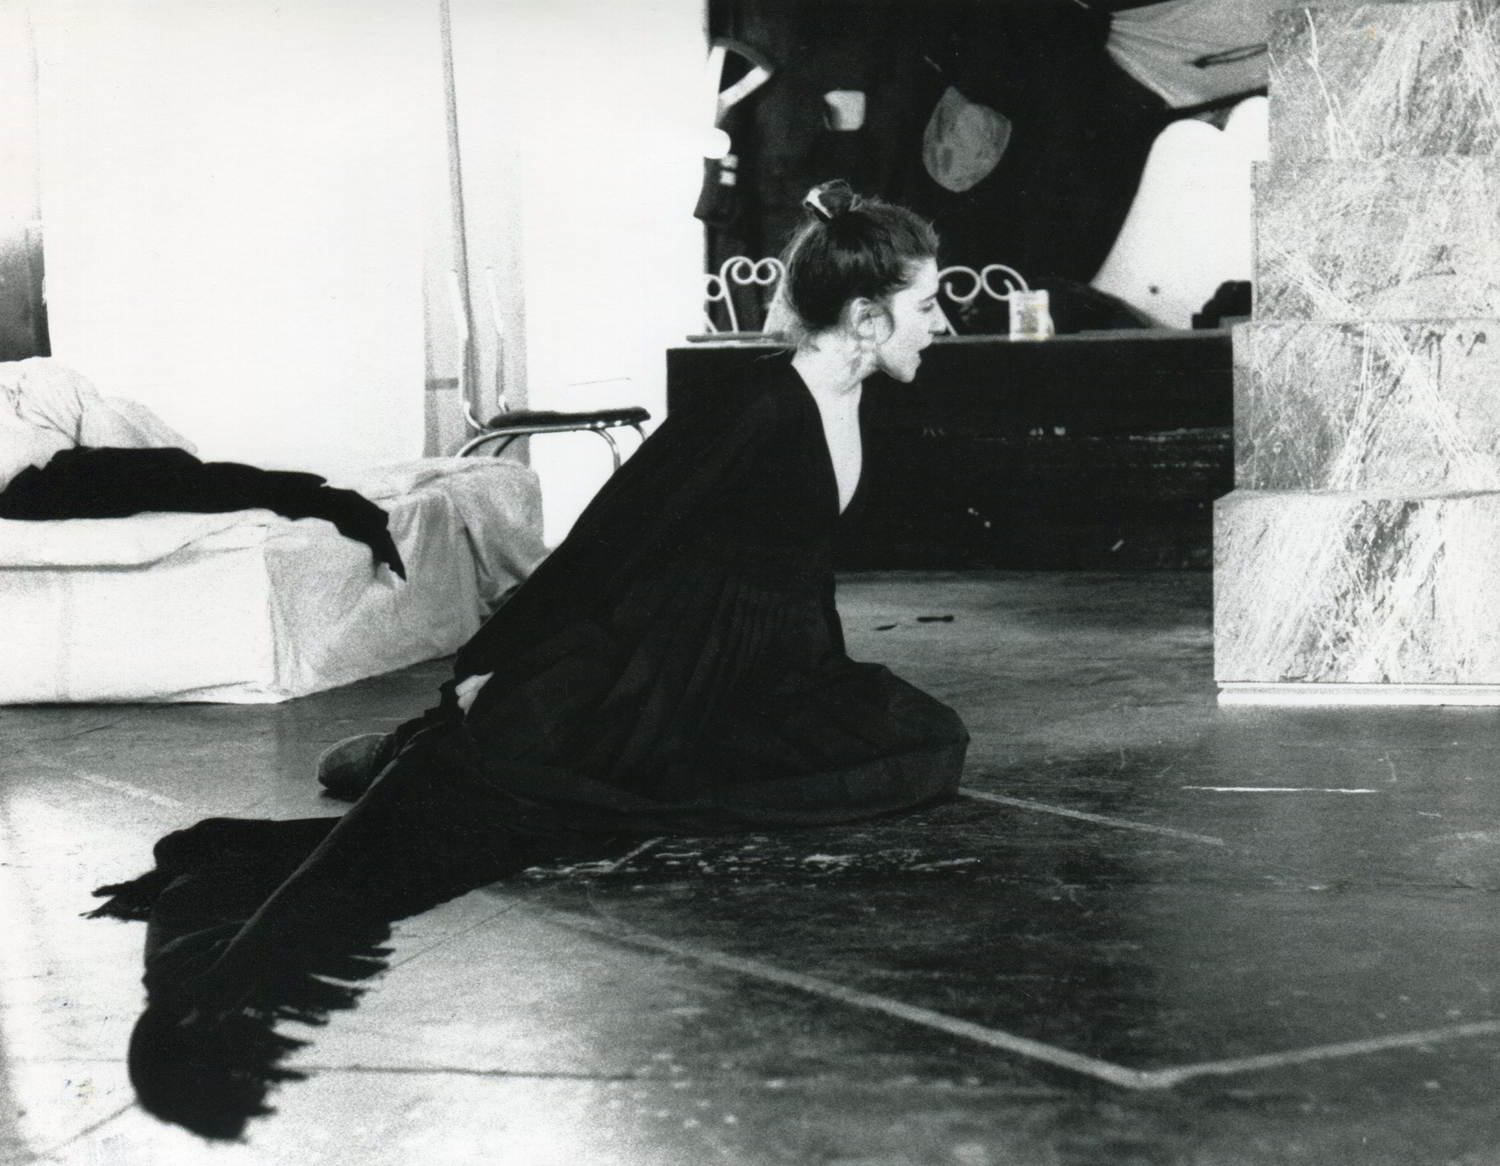 woman in black on floor stretching upwards